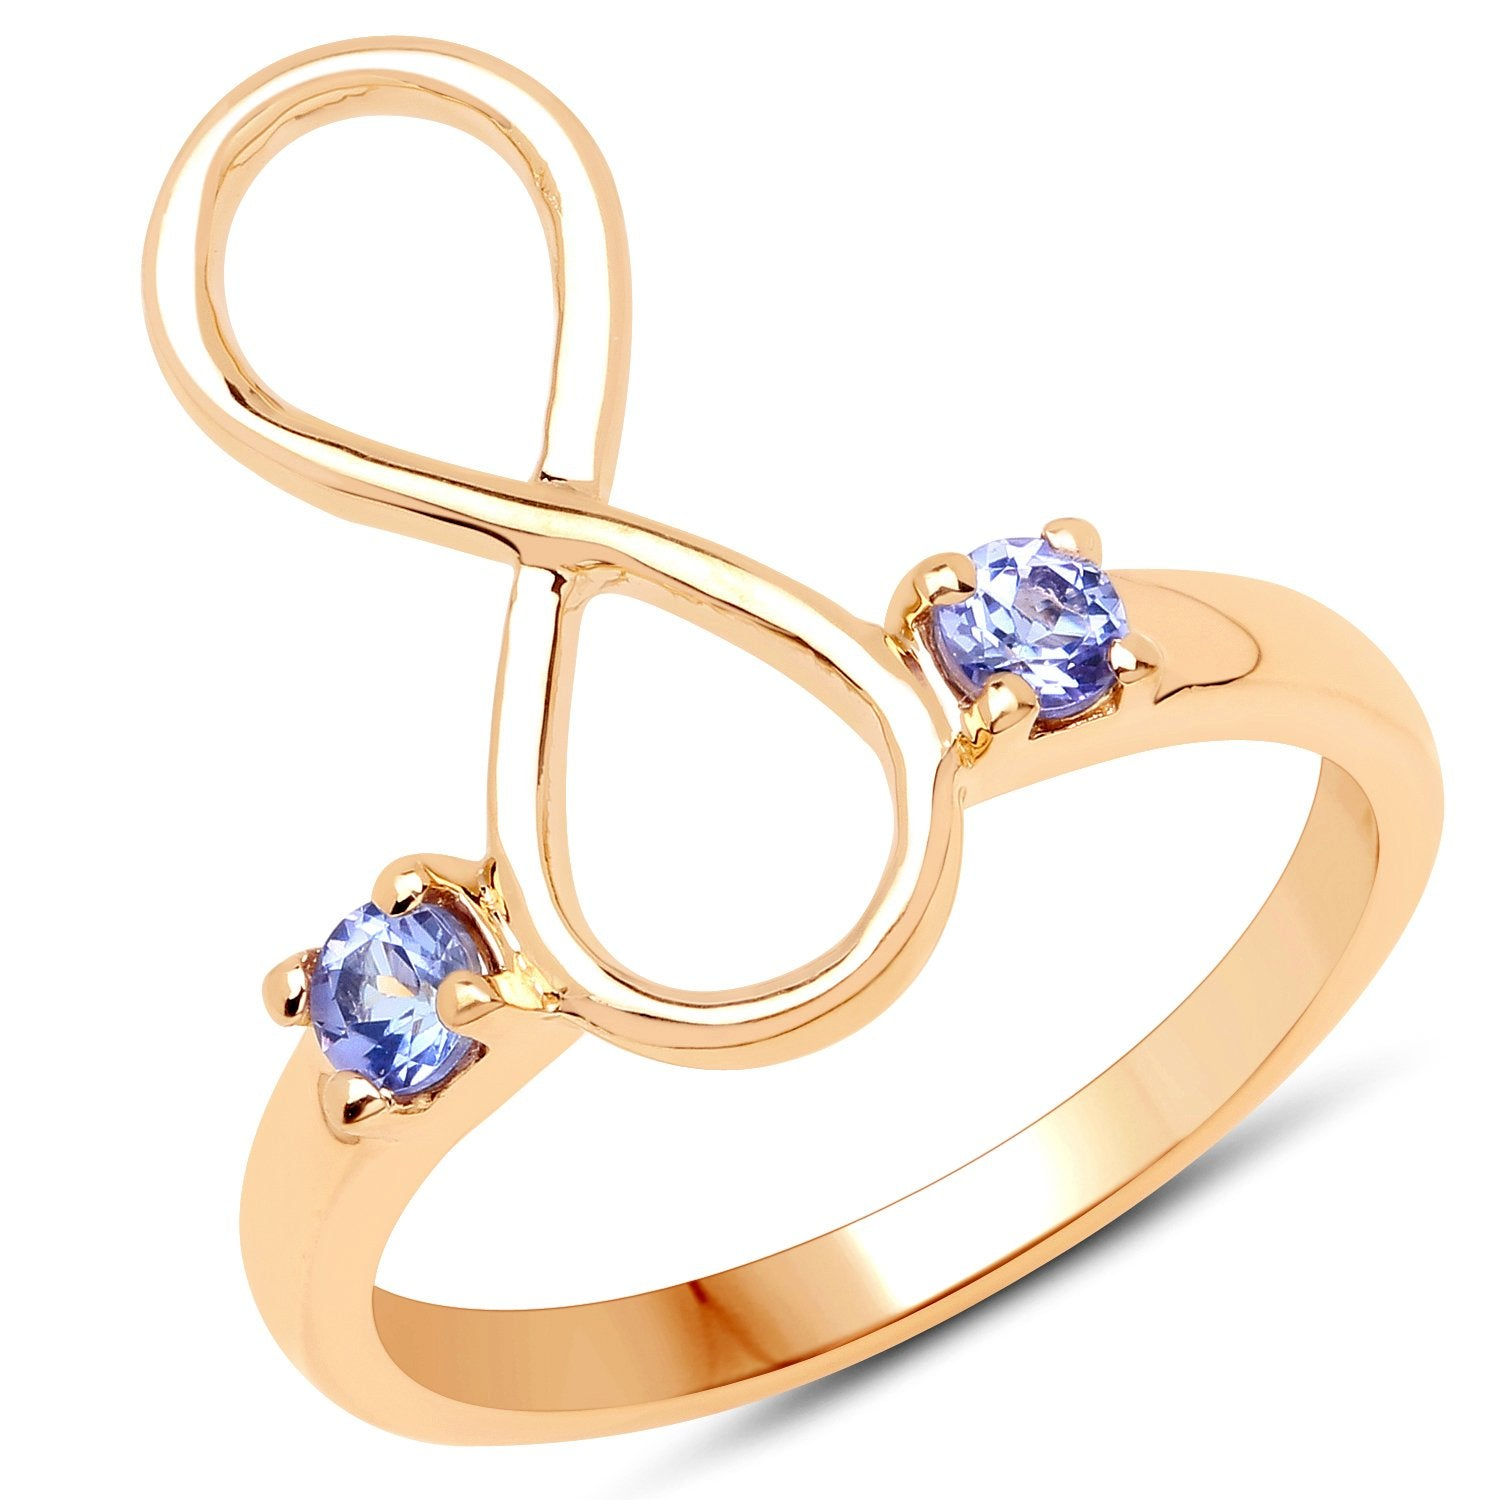 LoveHuang 0.18 Carats Genuine Tanzanite Infinity Ring Solid .925 Sterling Silver With 18KT Yellow Gold Plating